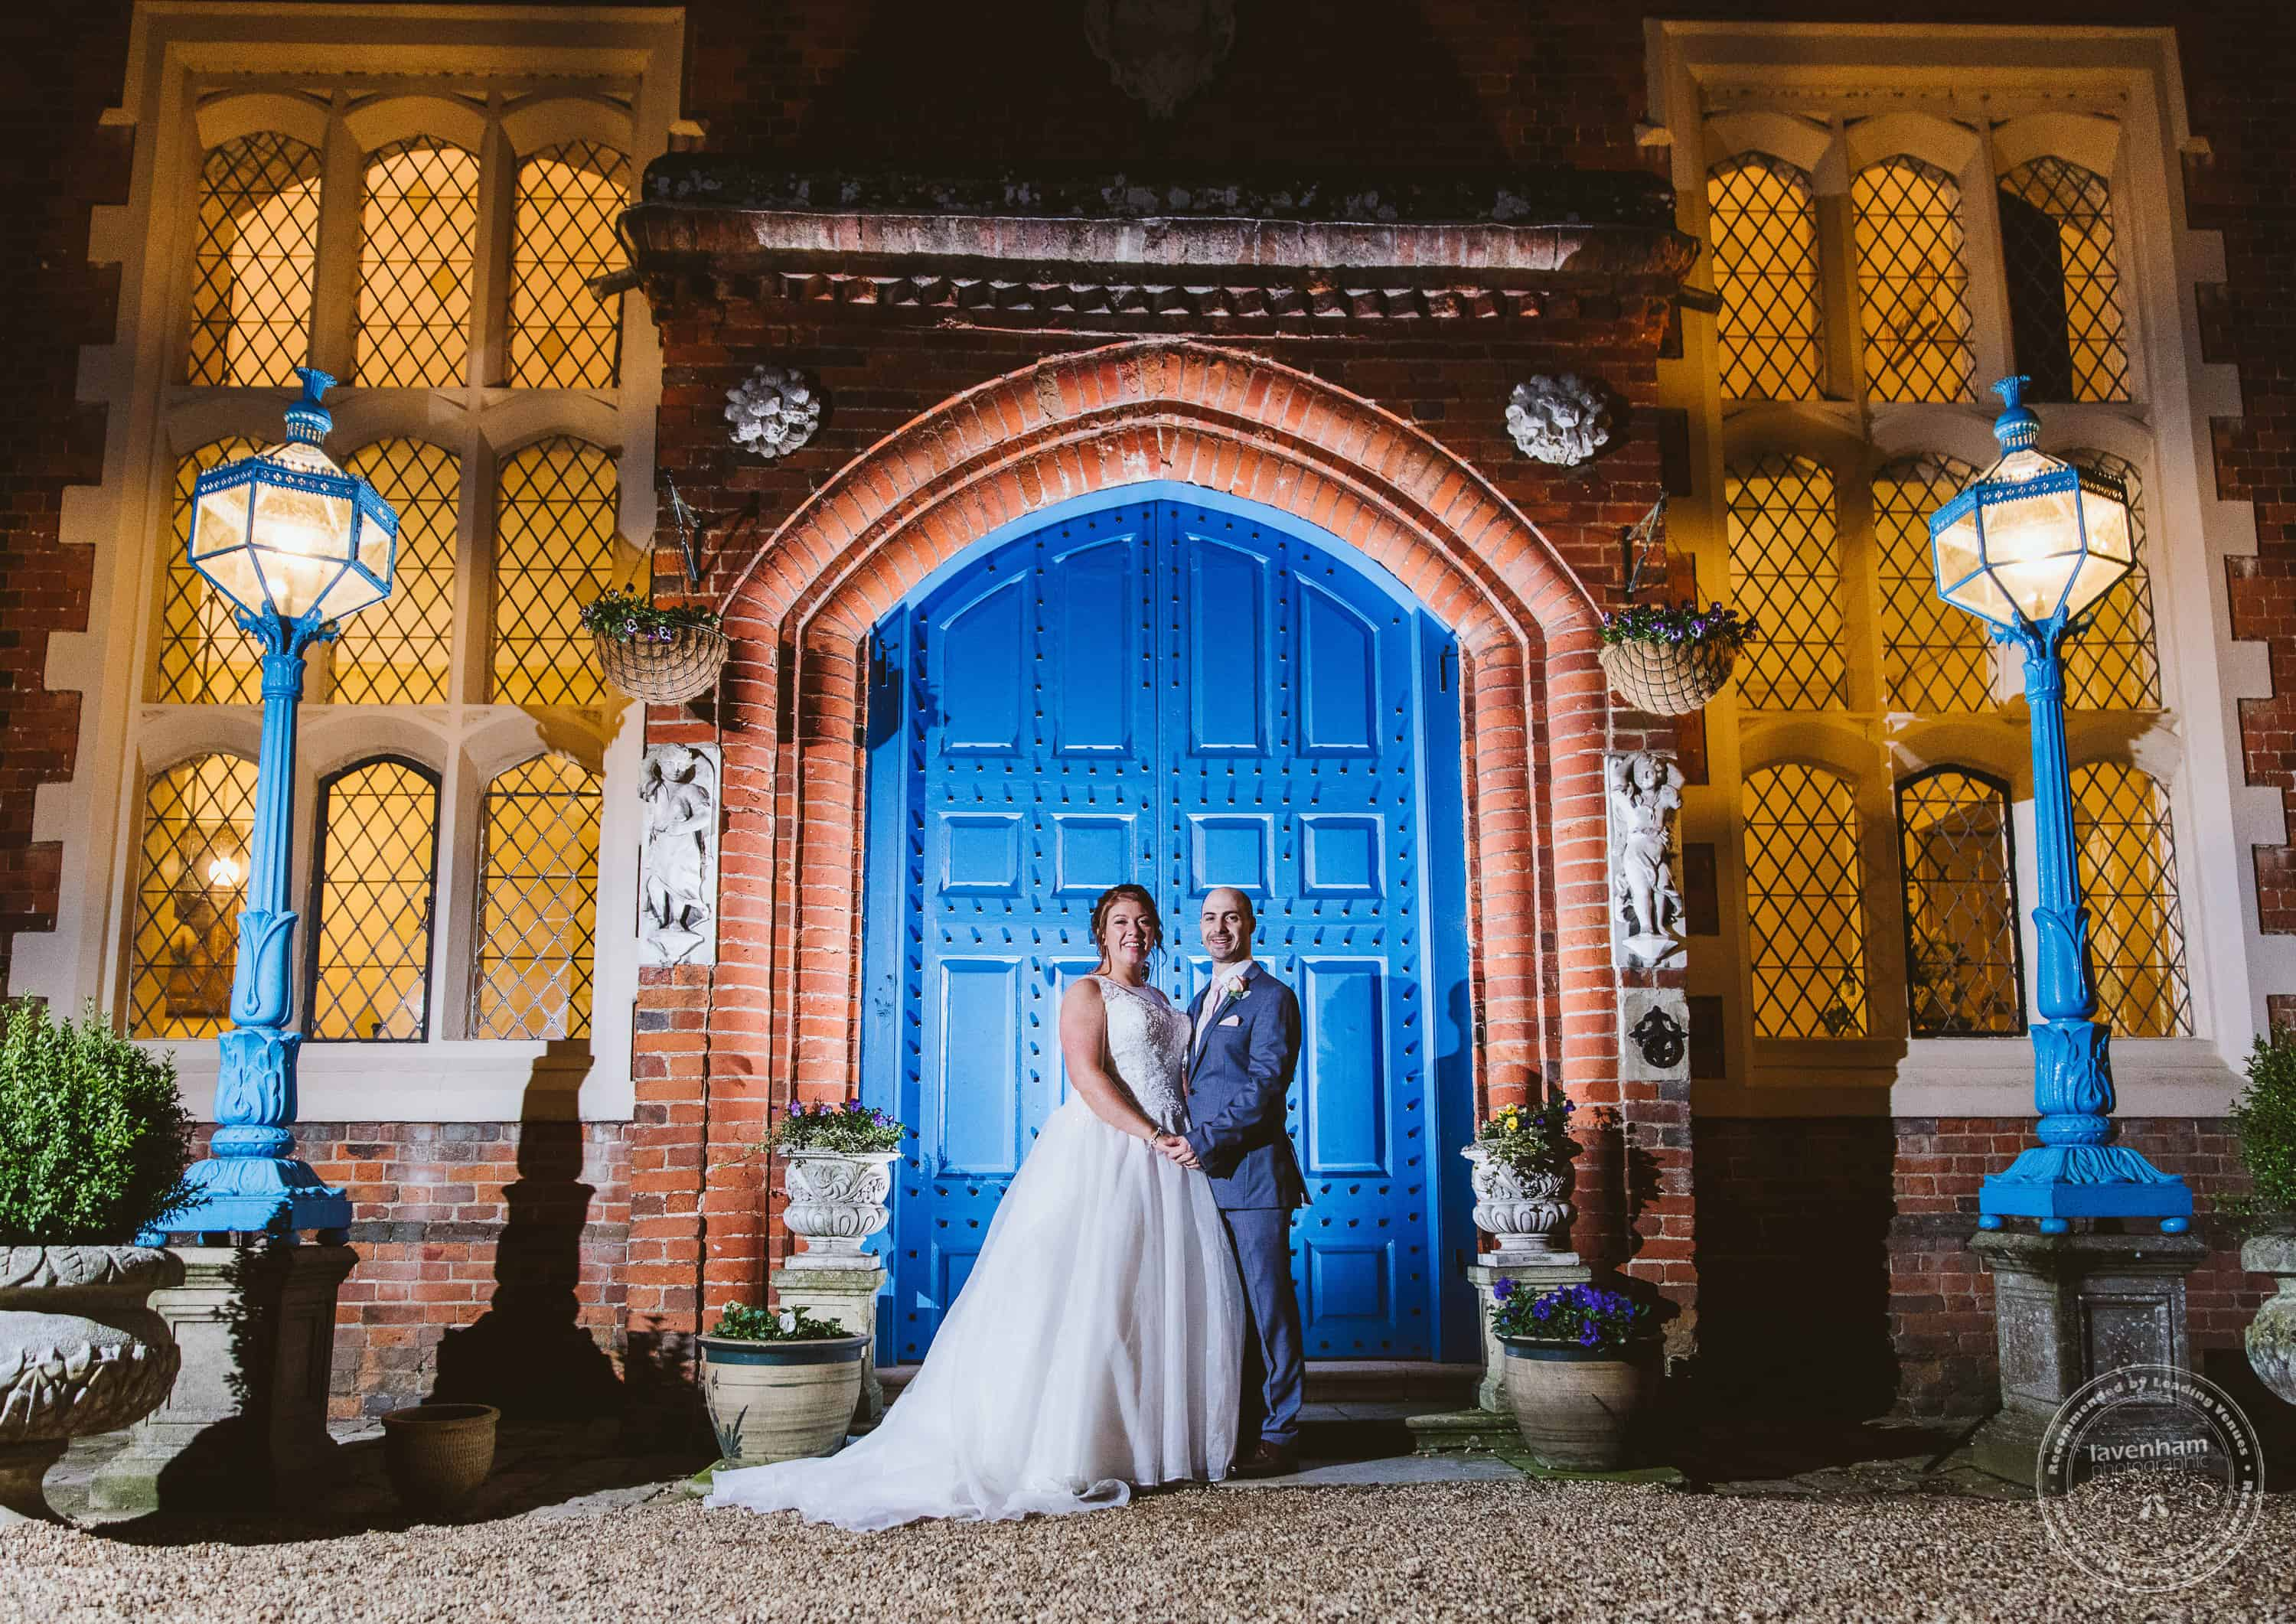 Night time photo at the famous Blue Doors at Gosfield Hall